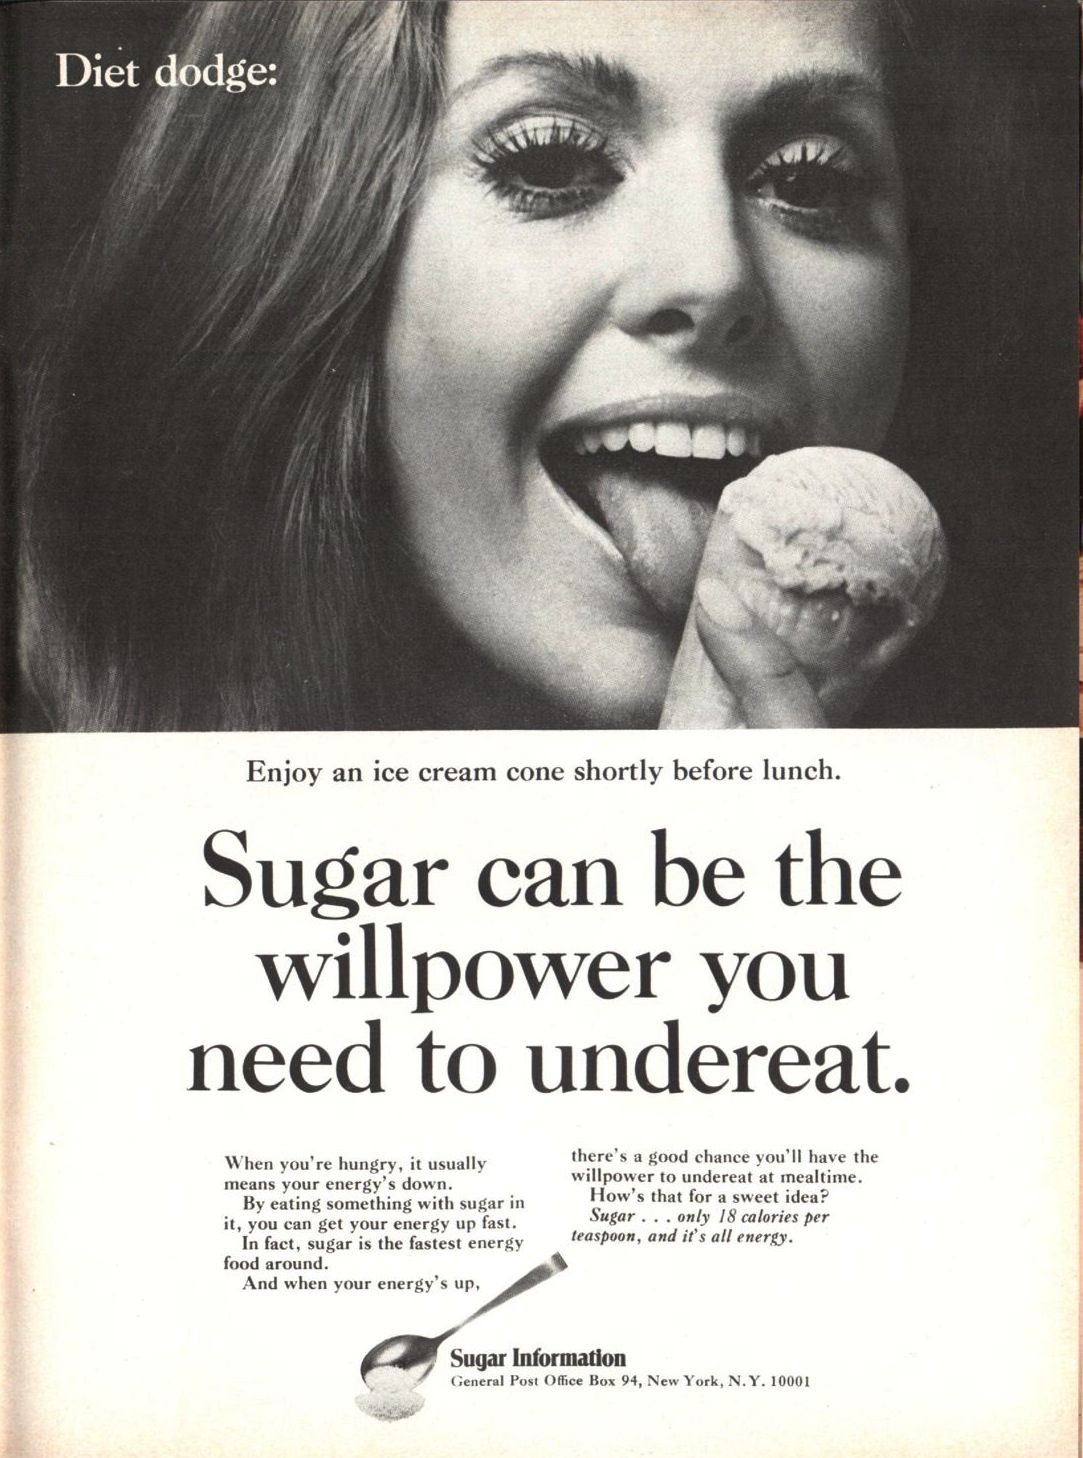 A pro-sugar ad that appeared in the May 10, 1971, issue of TIMEAn ice cream cone before lunch keeps you energized, giving you the power to eat less during the meal.